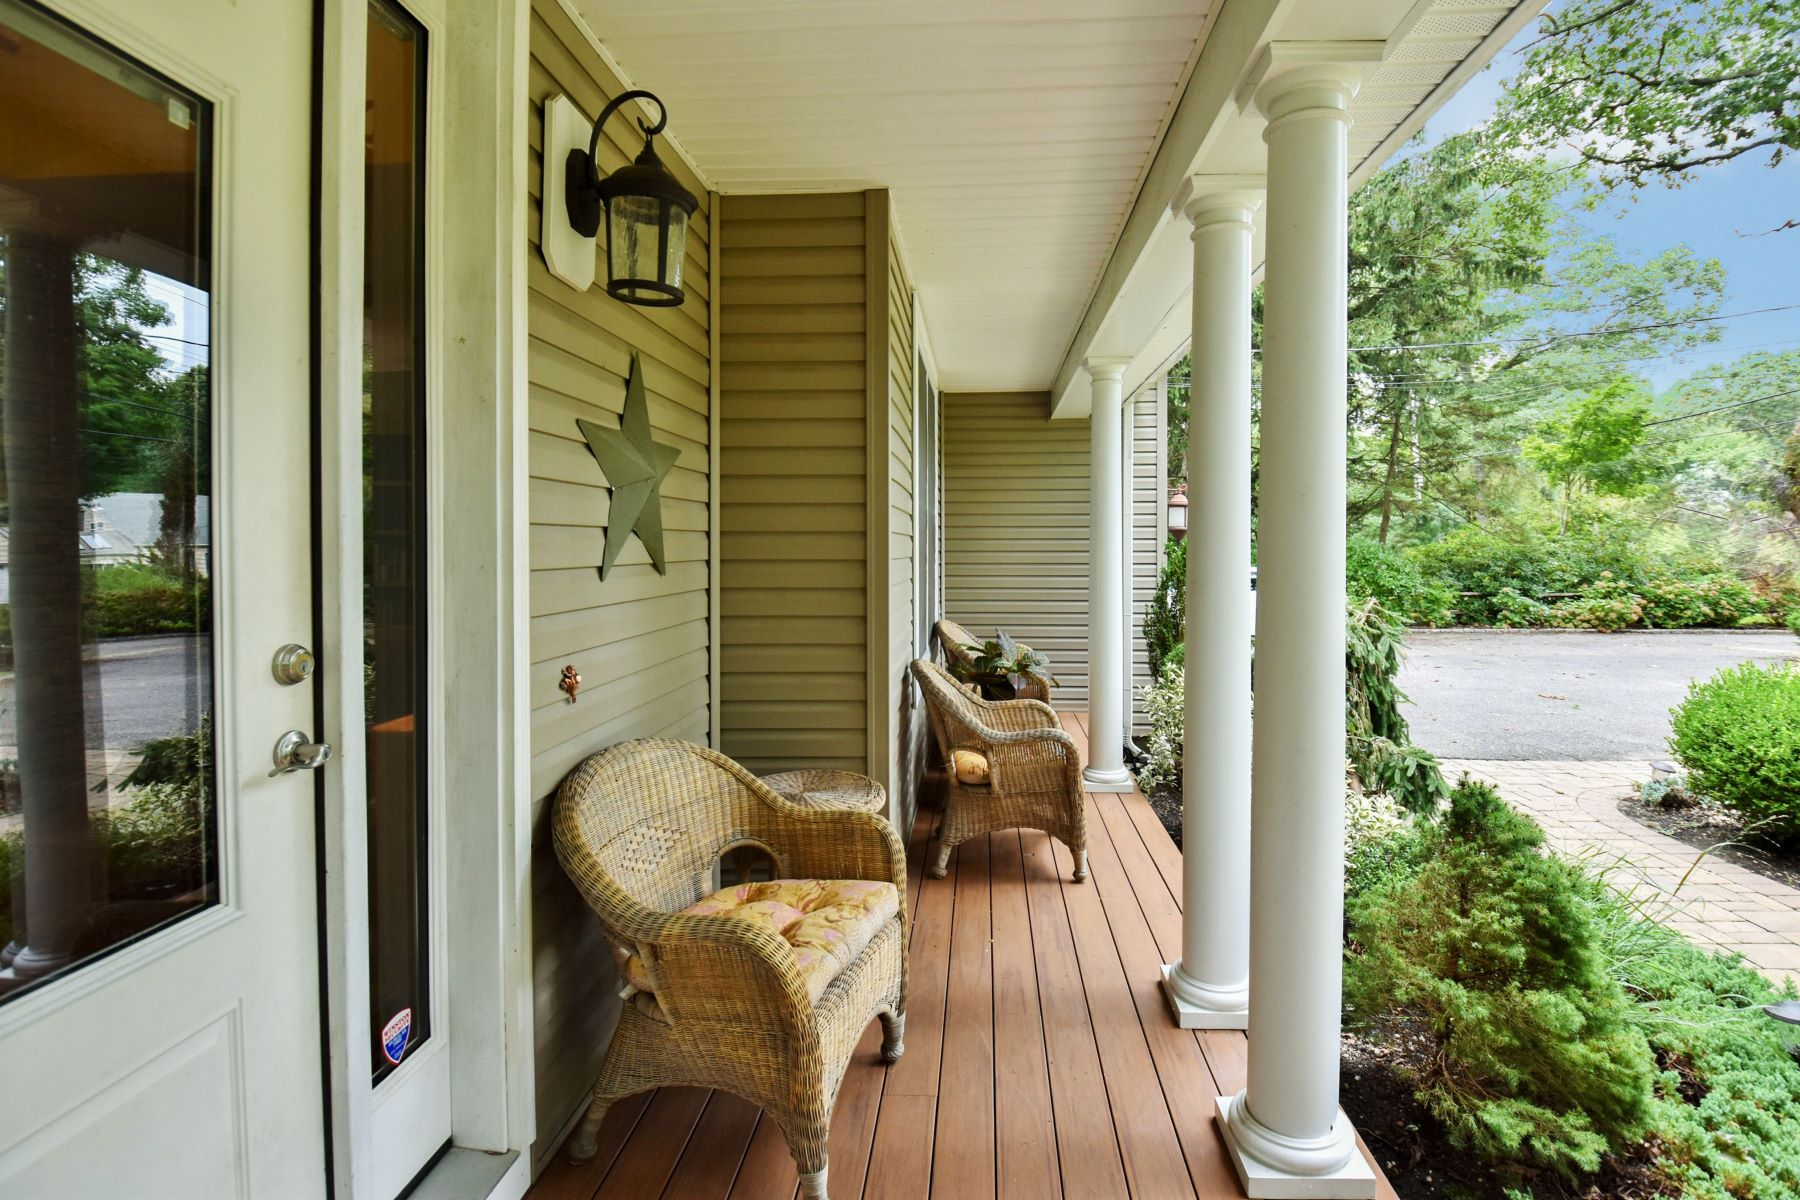 Single Family Homes for Active at Northport 64 Oleander Dr Northport, New York 11768 United States